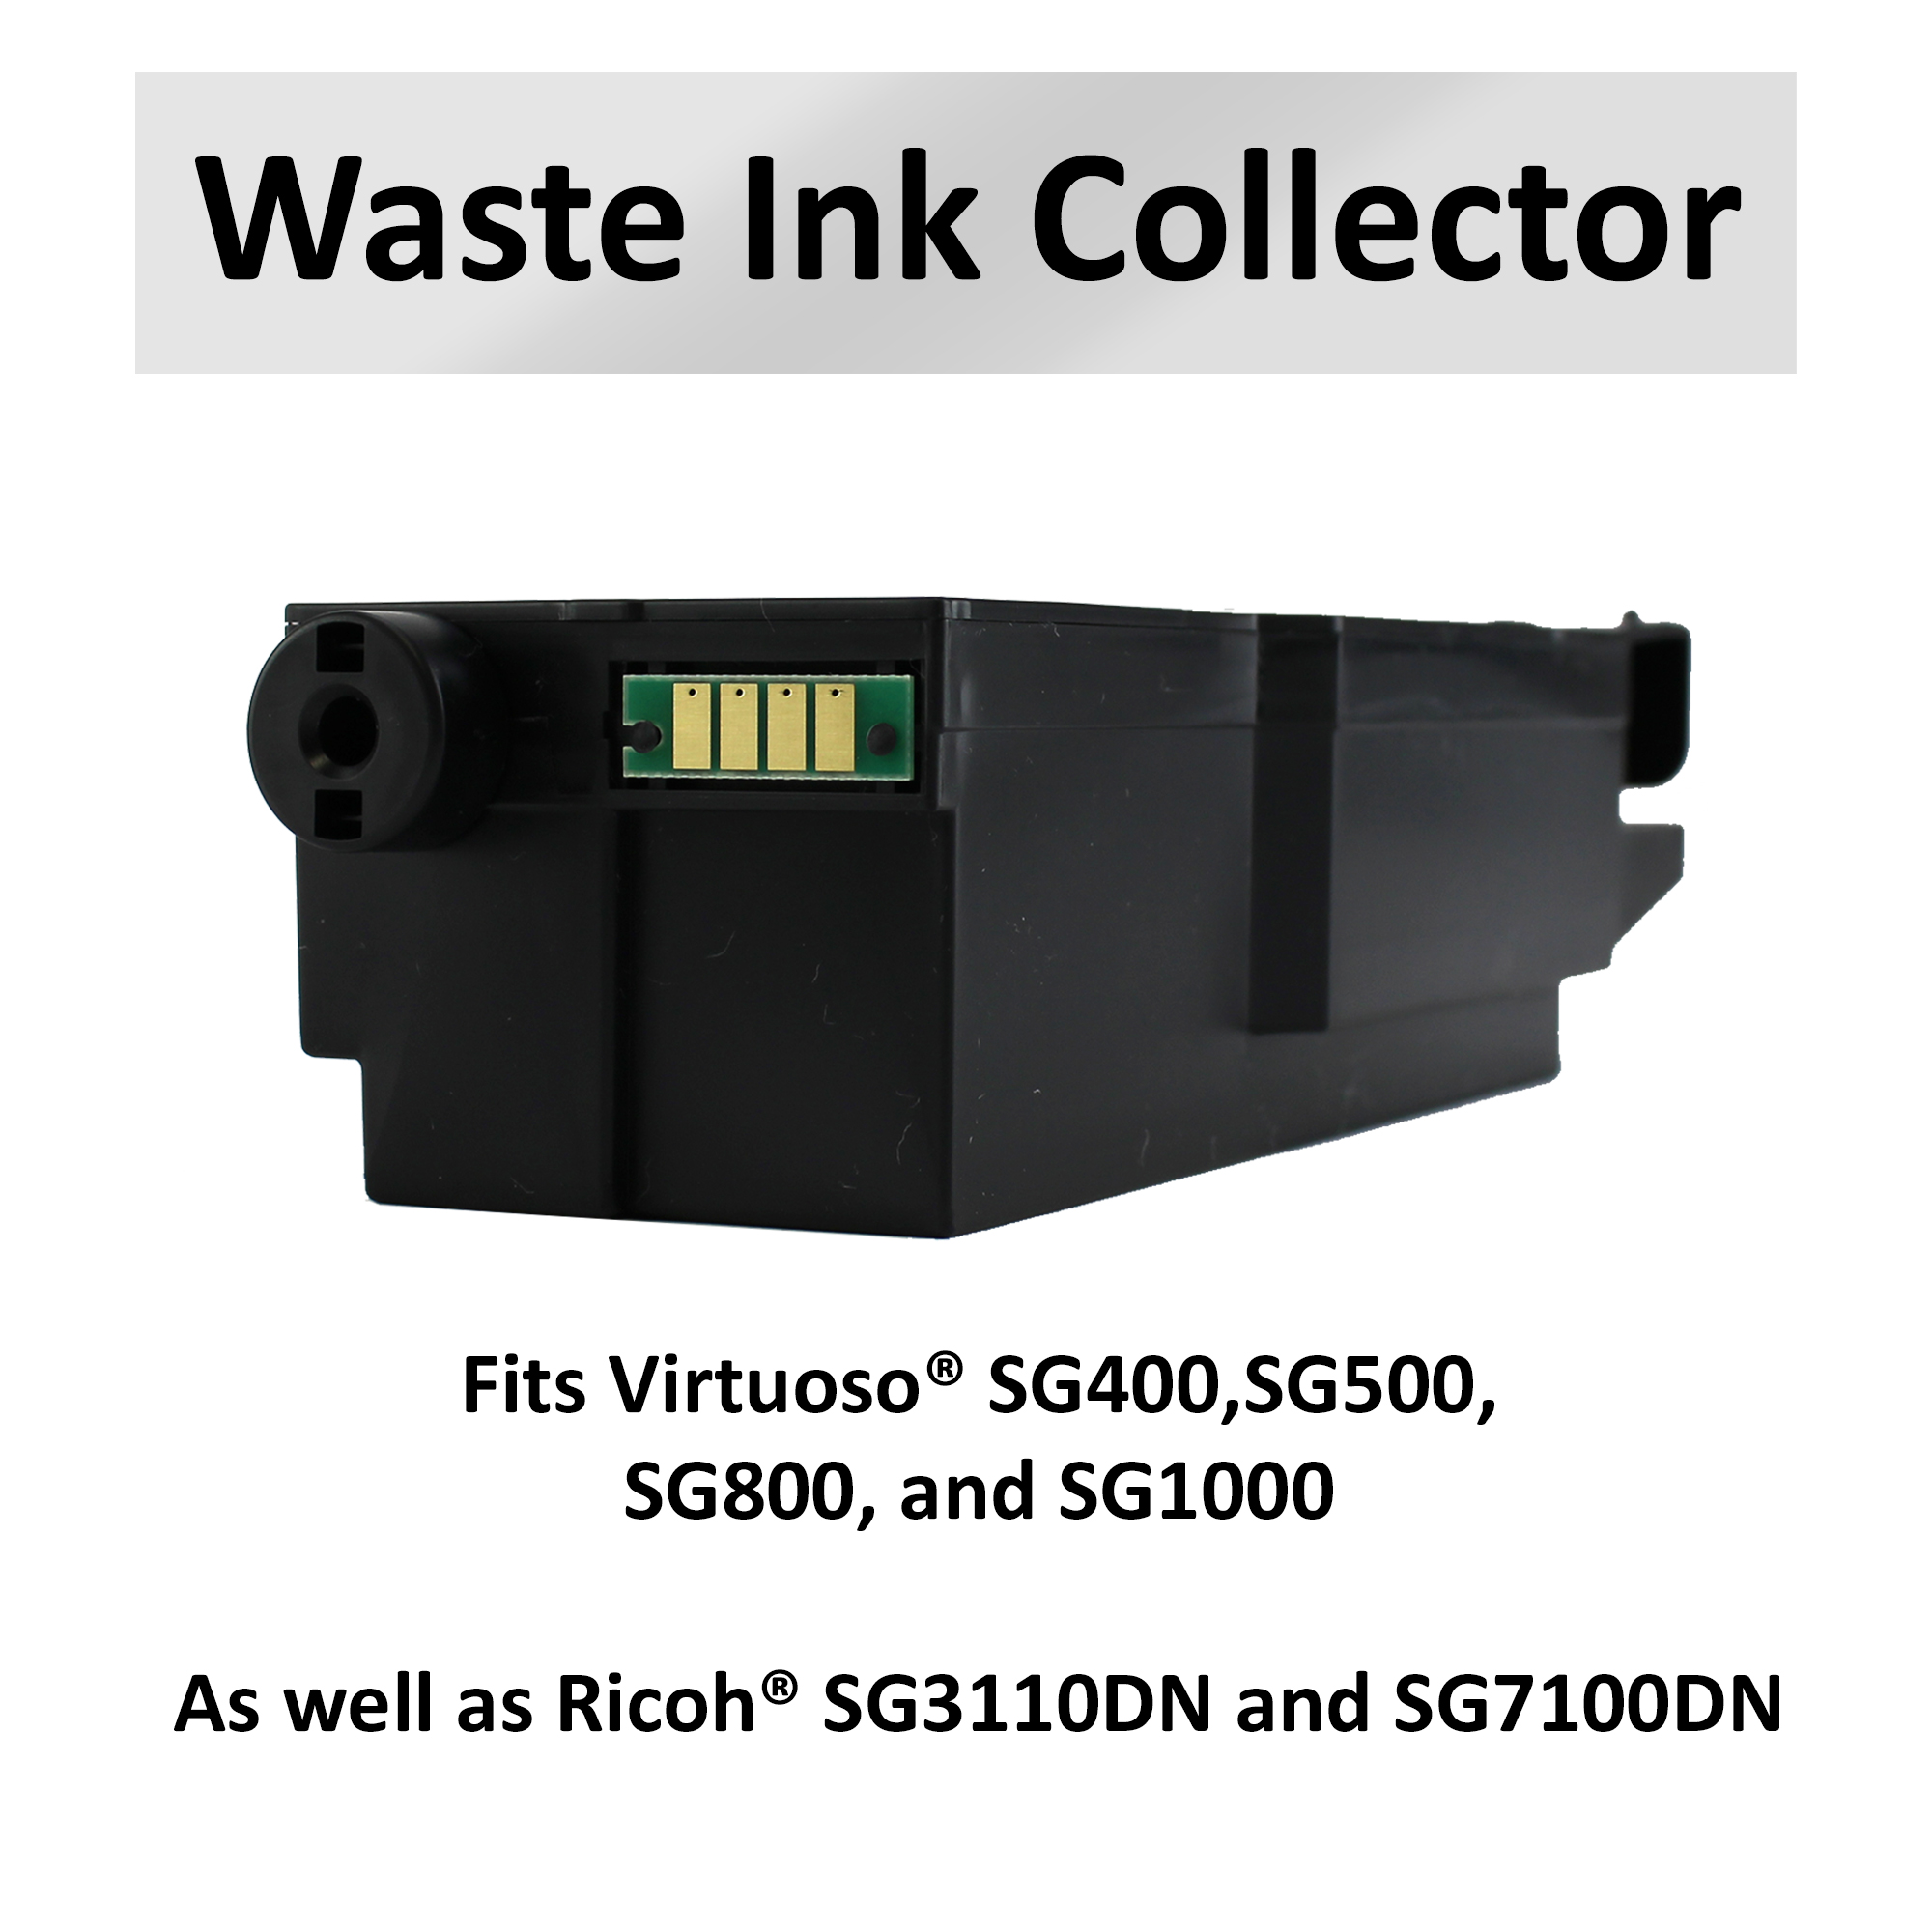 Virtuoso Waste Tank Ink Collector for SG400/SG800